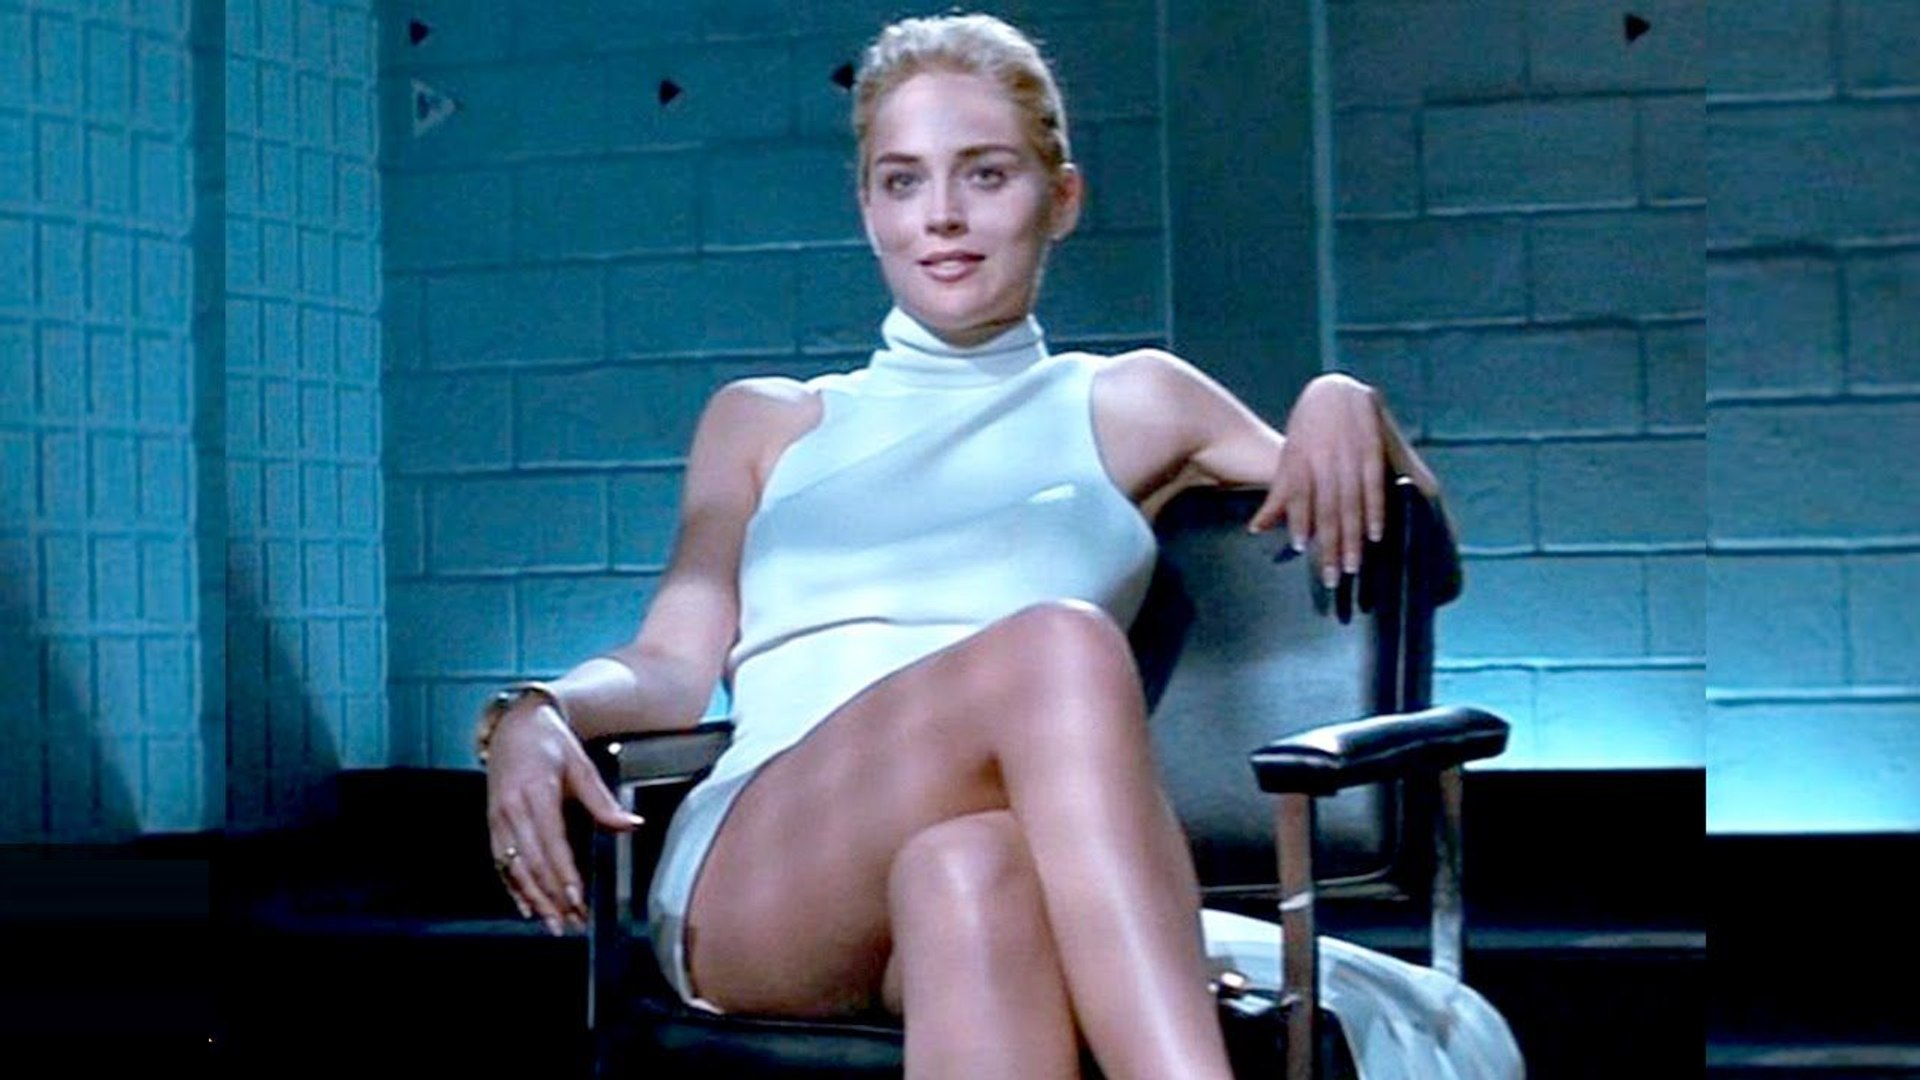 From 'Basic Instinct' to 'Showgirls': The rise and fall of the erotic thriller